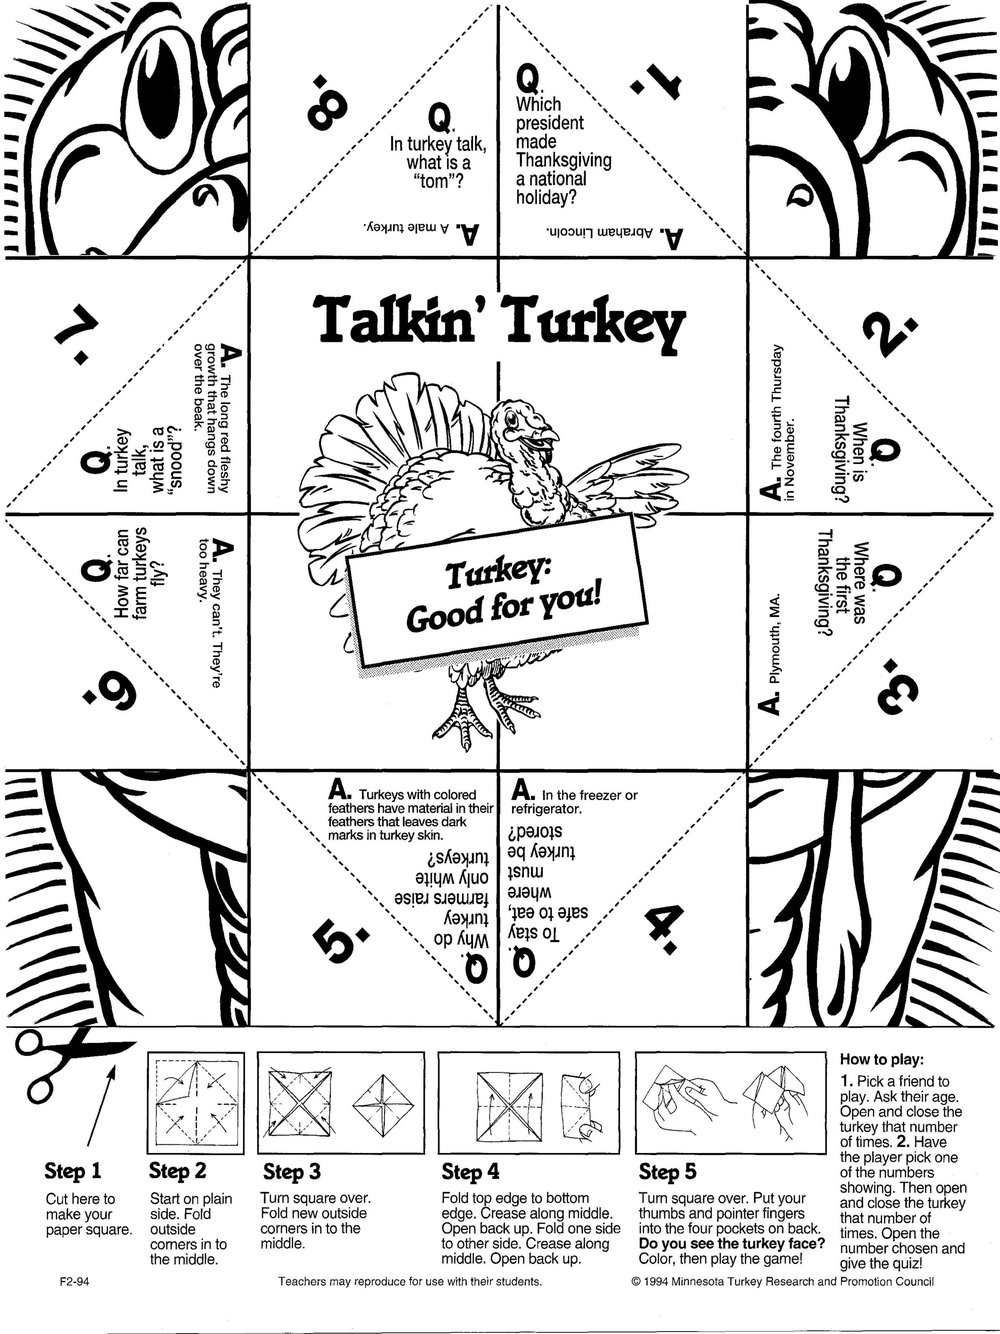 Turkey folding game